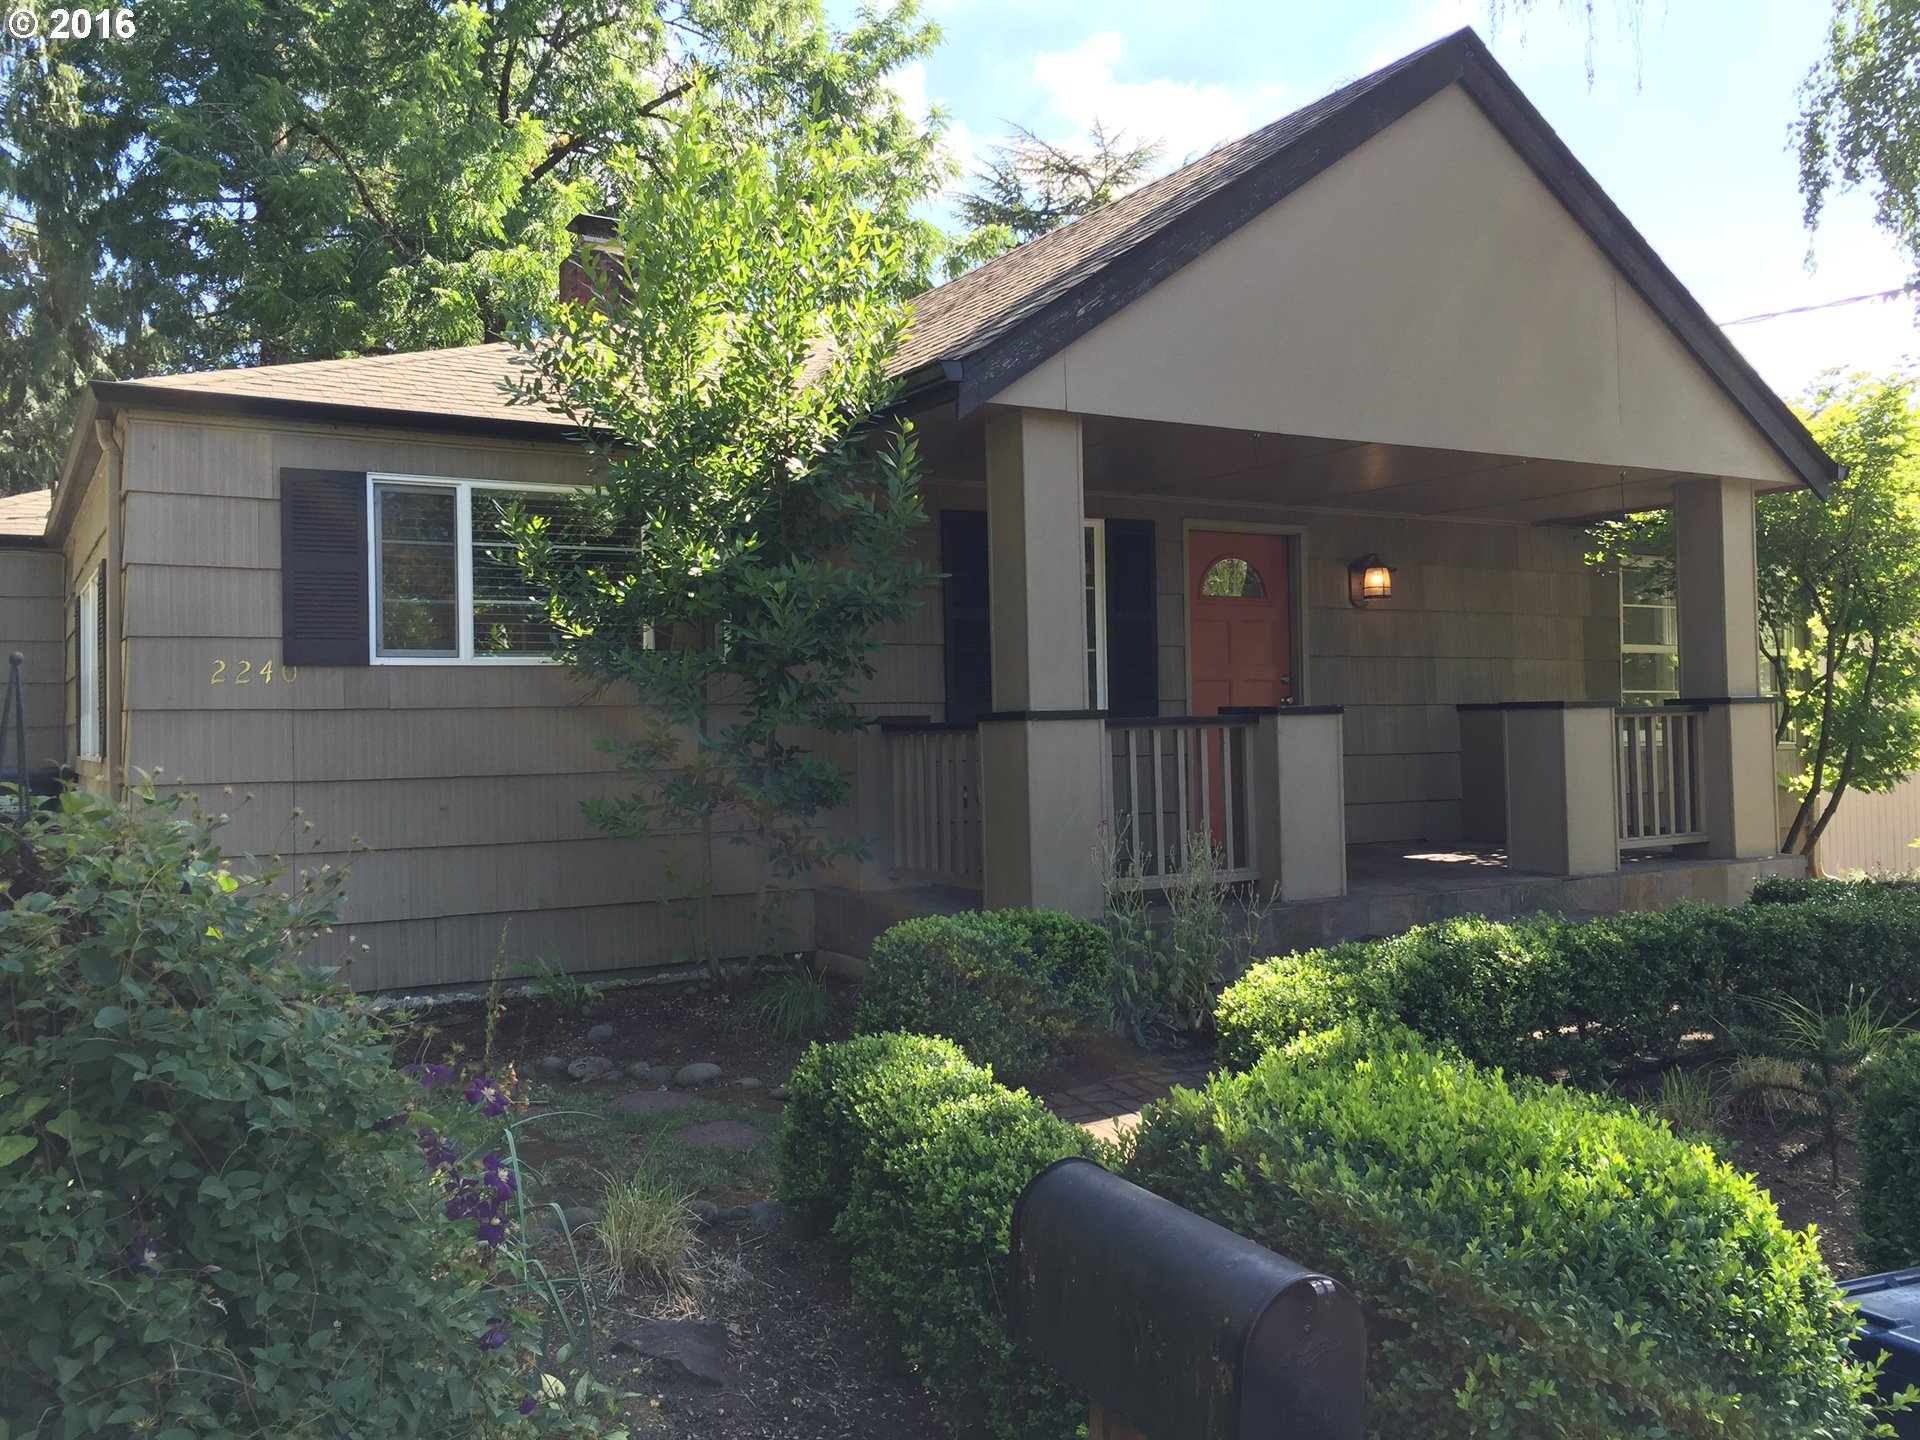 2240 BIRCH LN, Eugene OR 97403